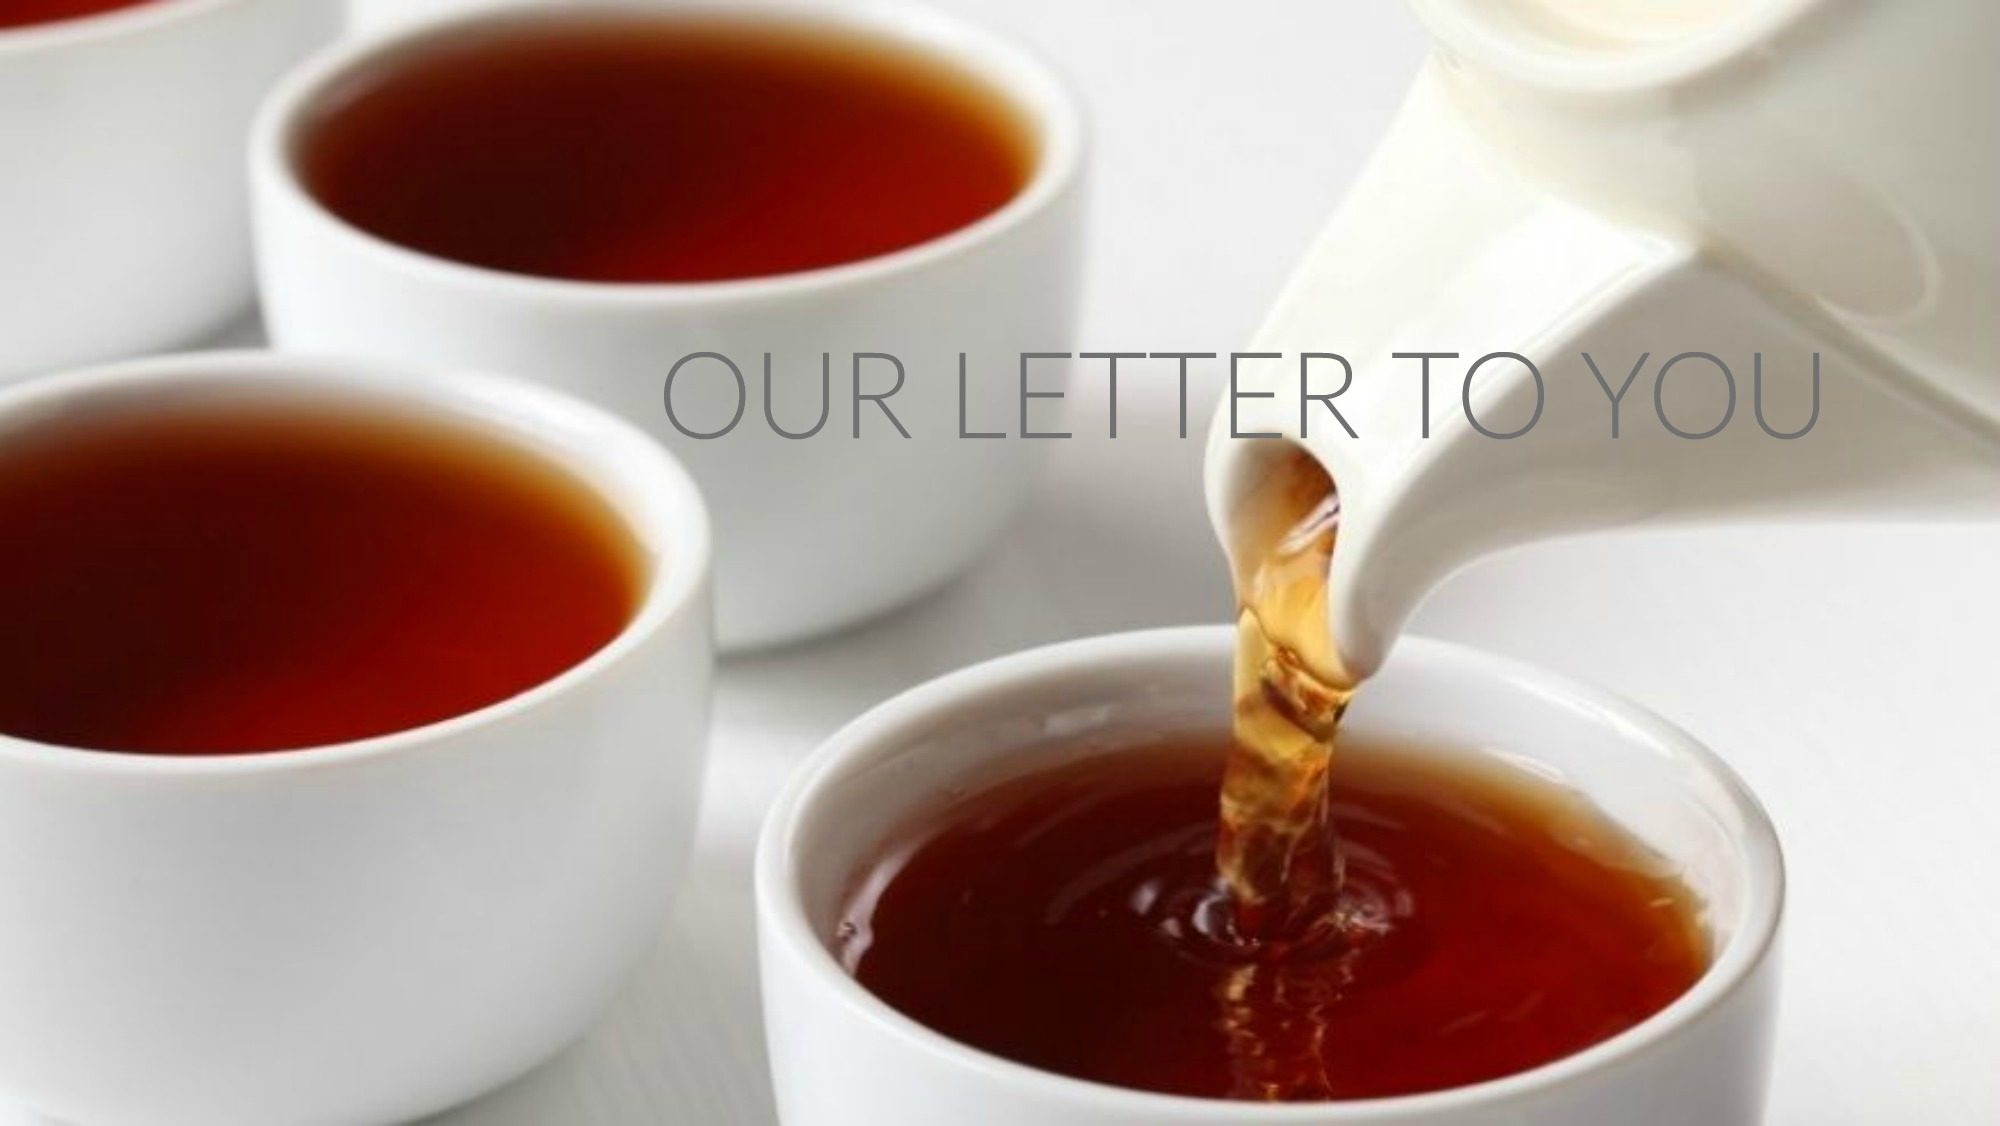 intervention services, whole families our letter tea cup, whole families intervention and services